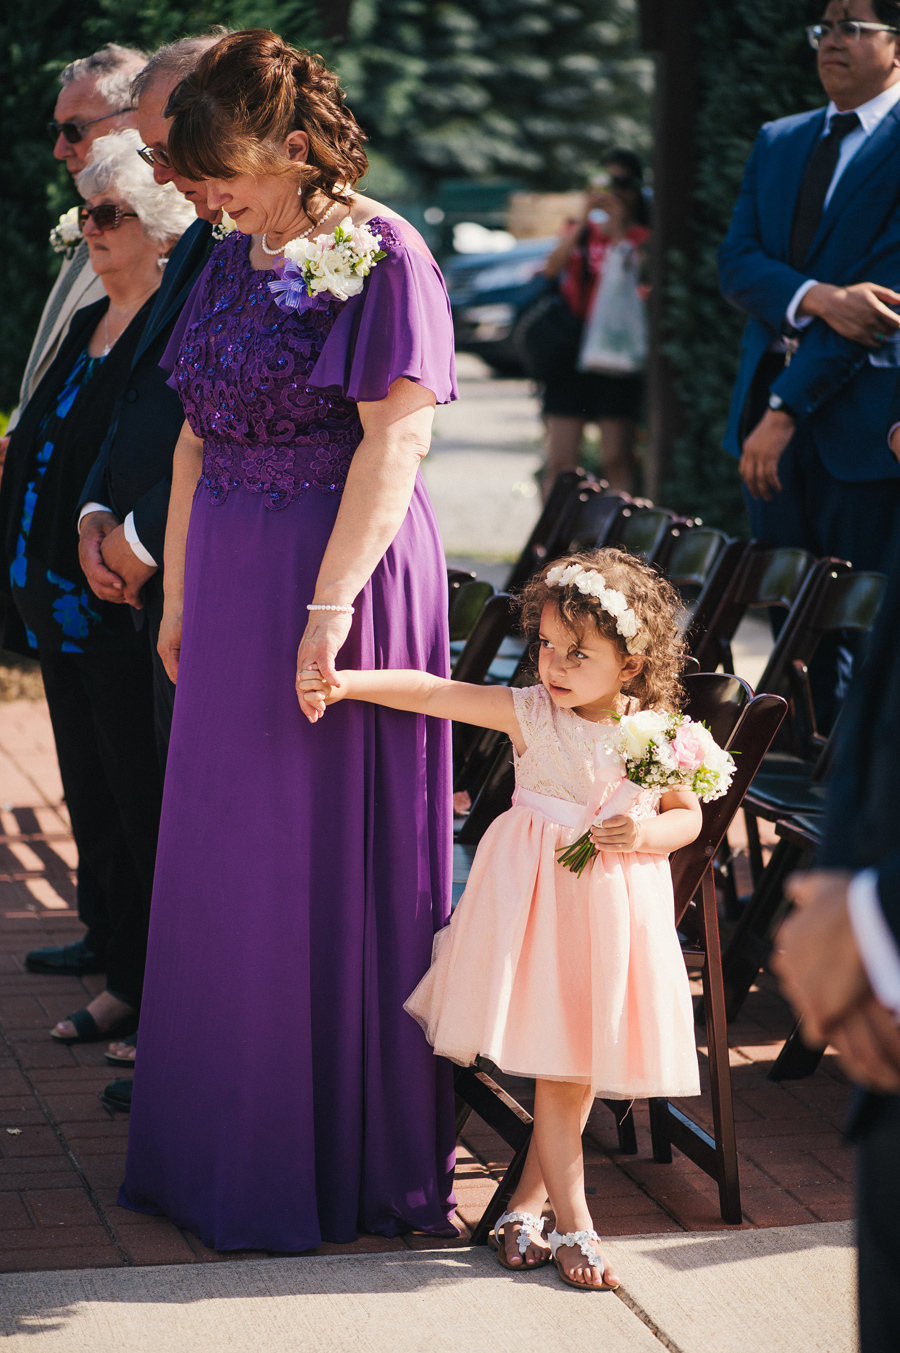 flower standing and holding a wedding guest's hand